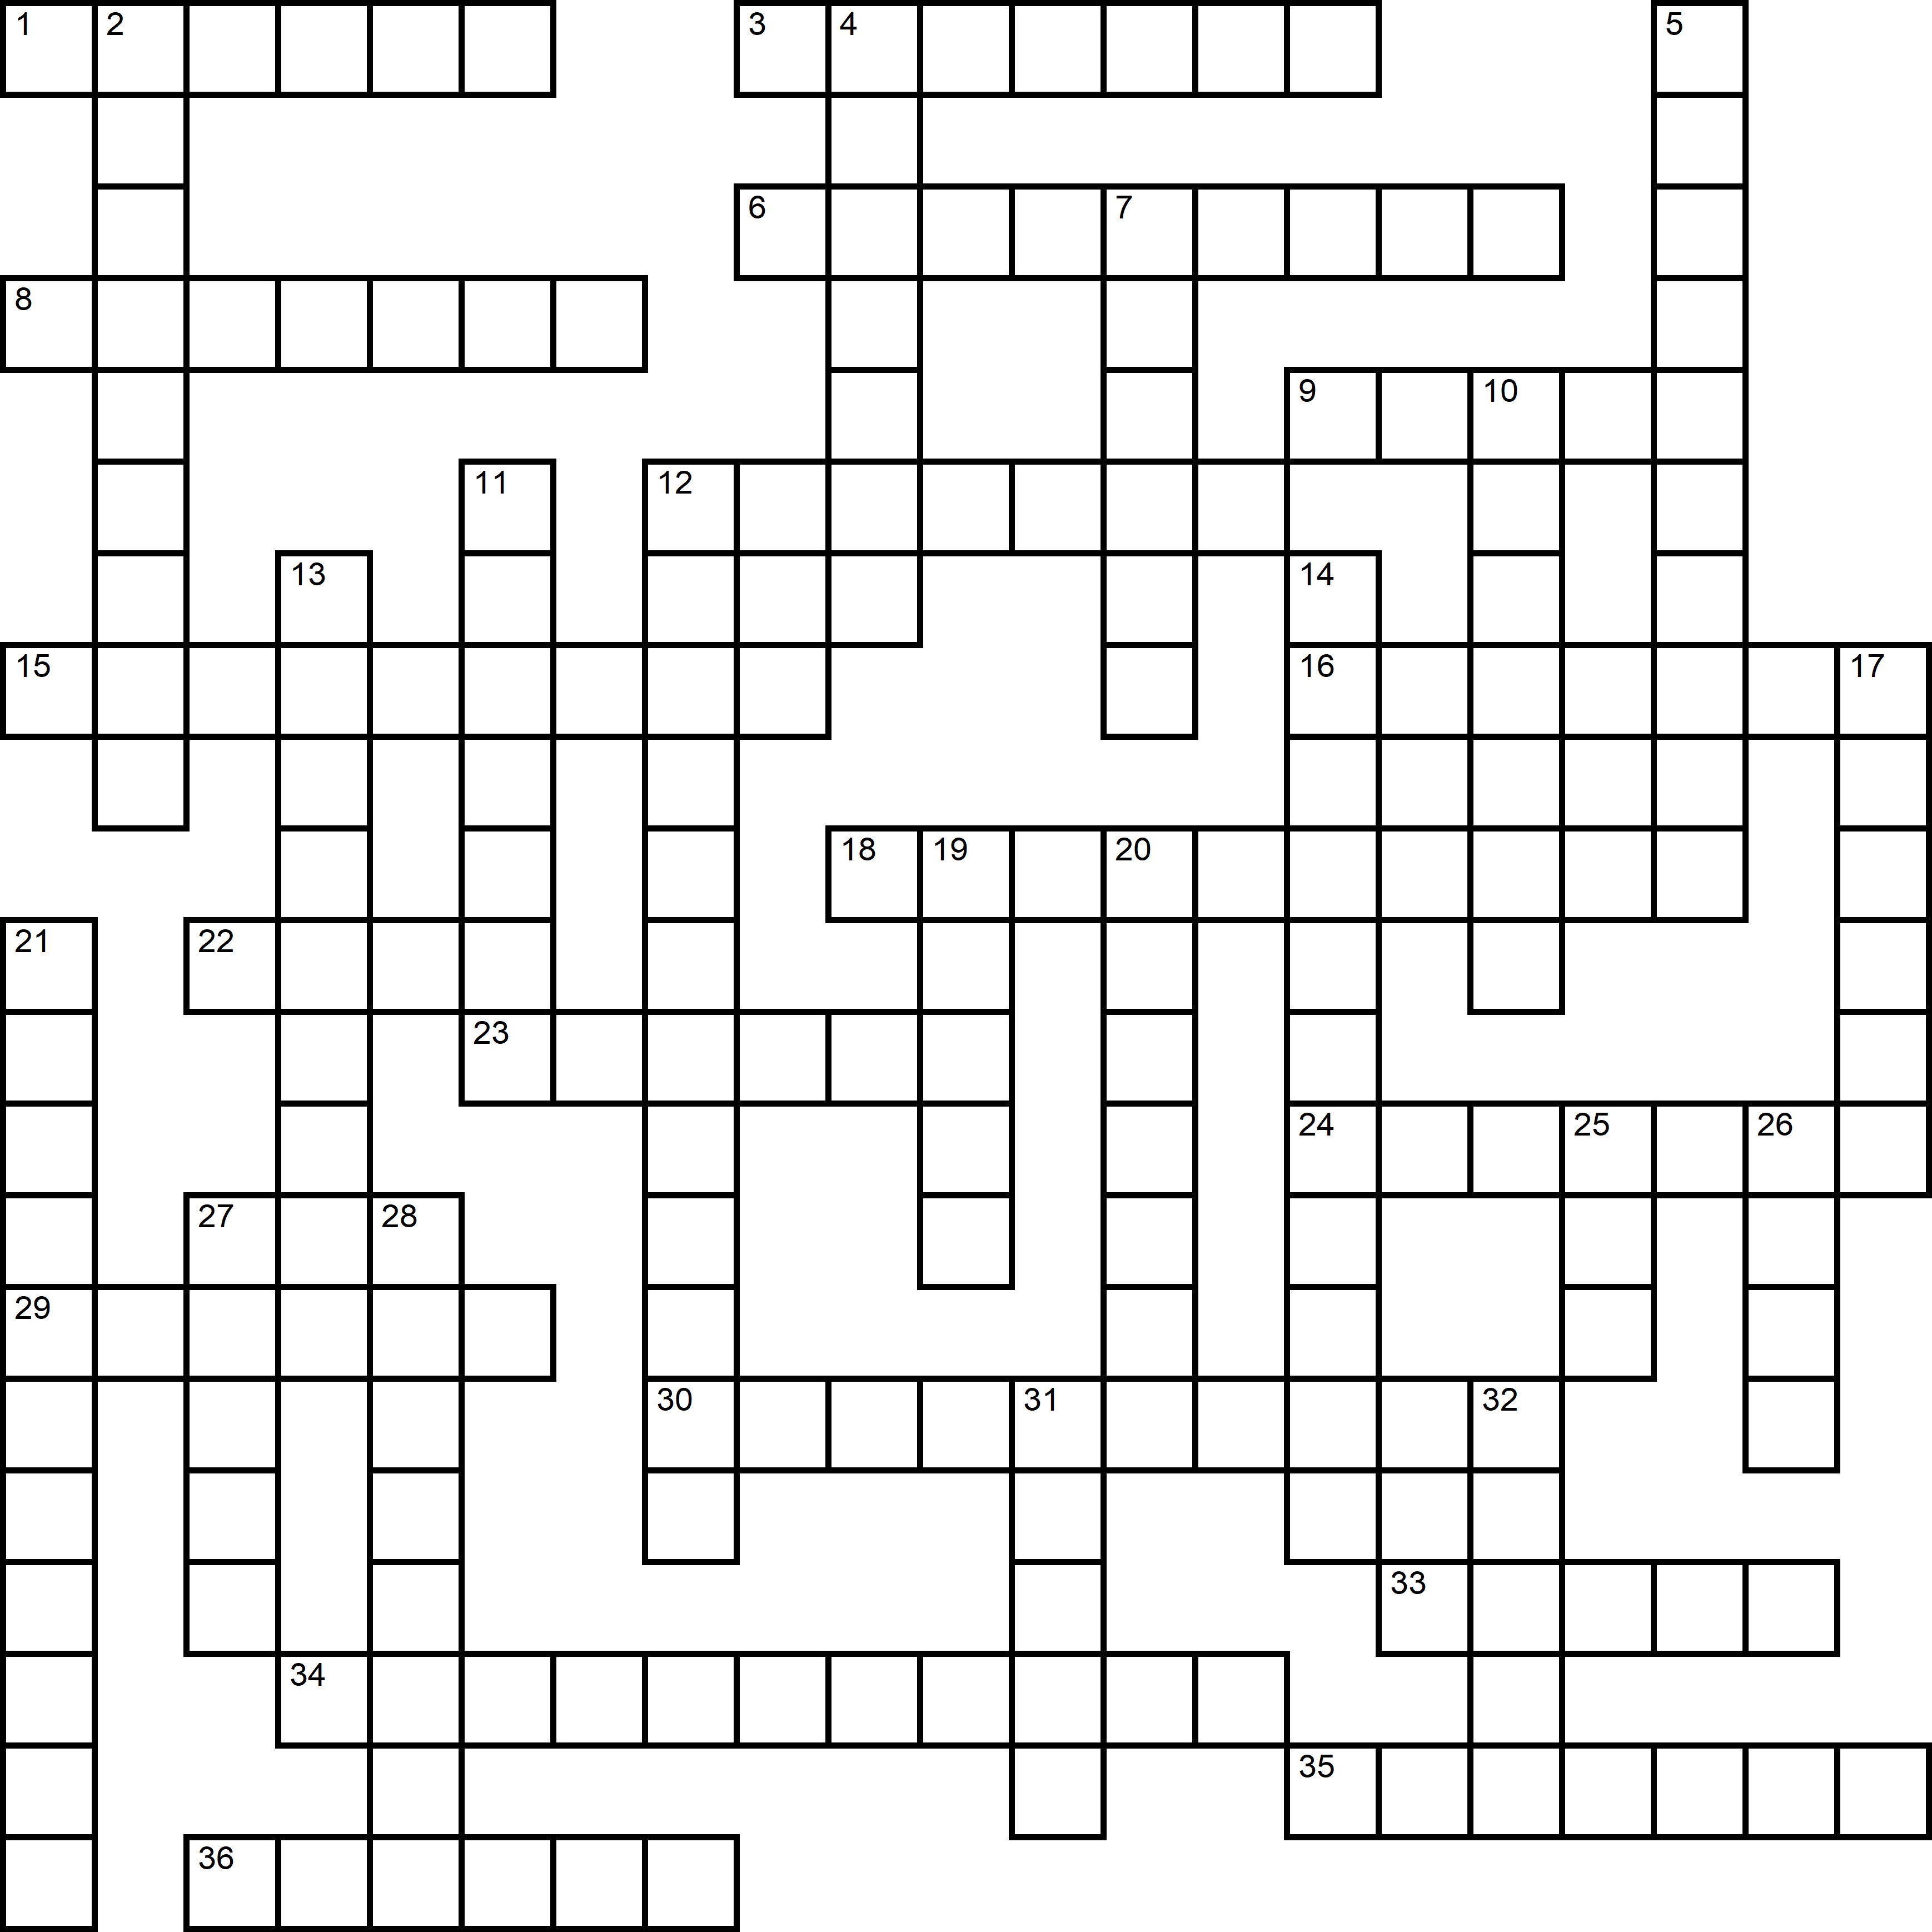 Easy Crossword About International Beer Day